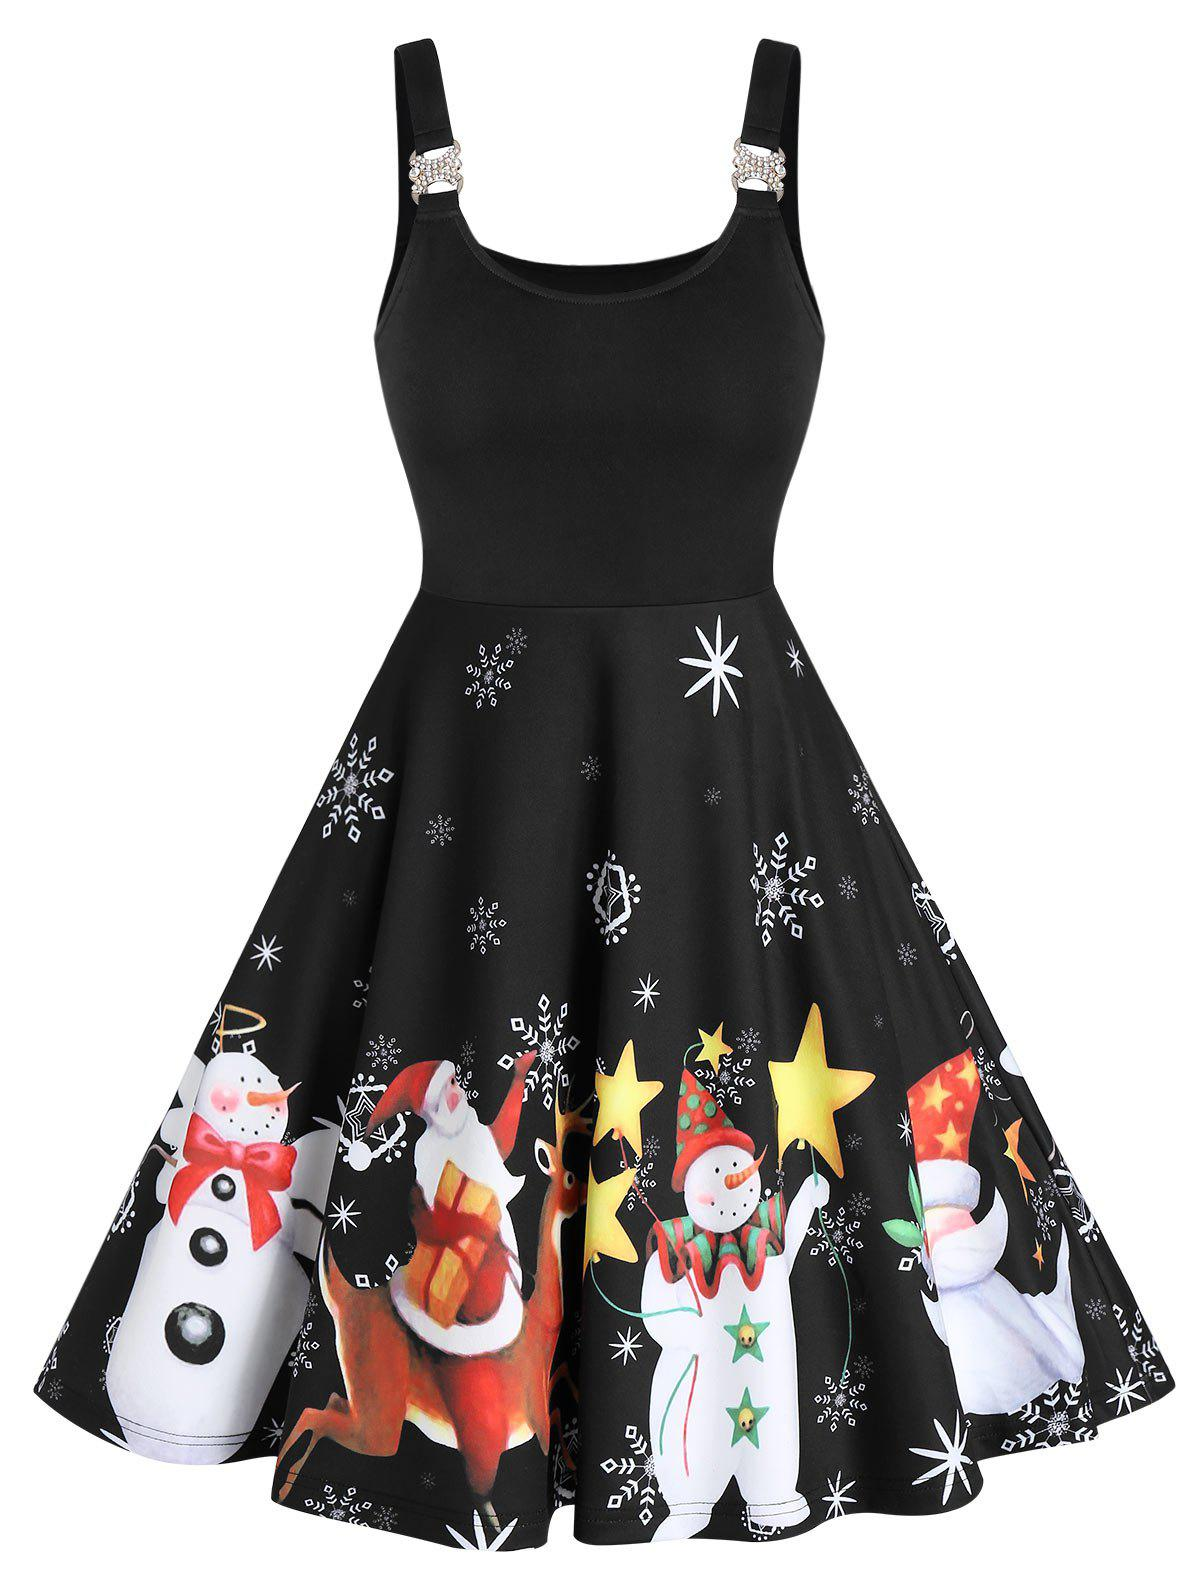 Shop Christmas Santa Claus Snowman Print Sleeveless Skater Dress